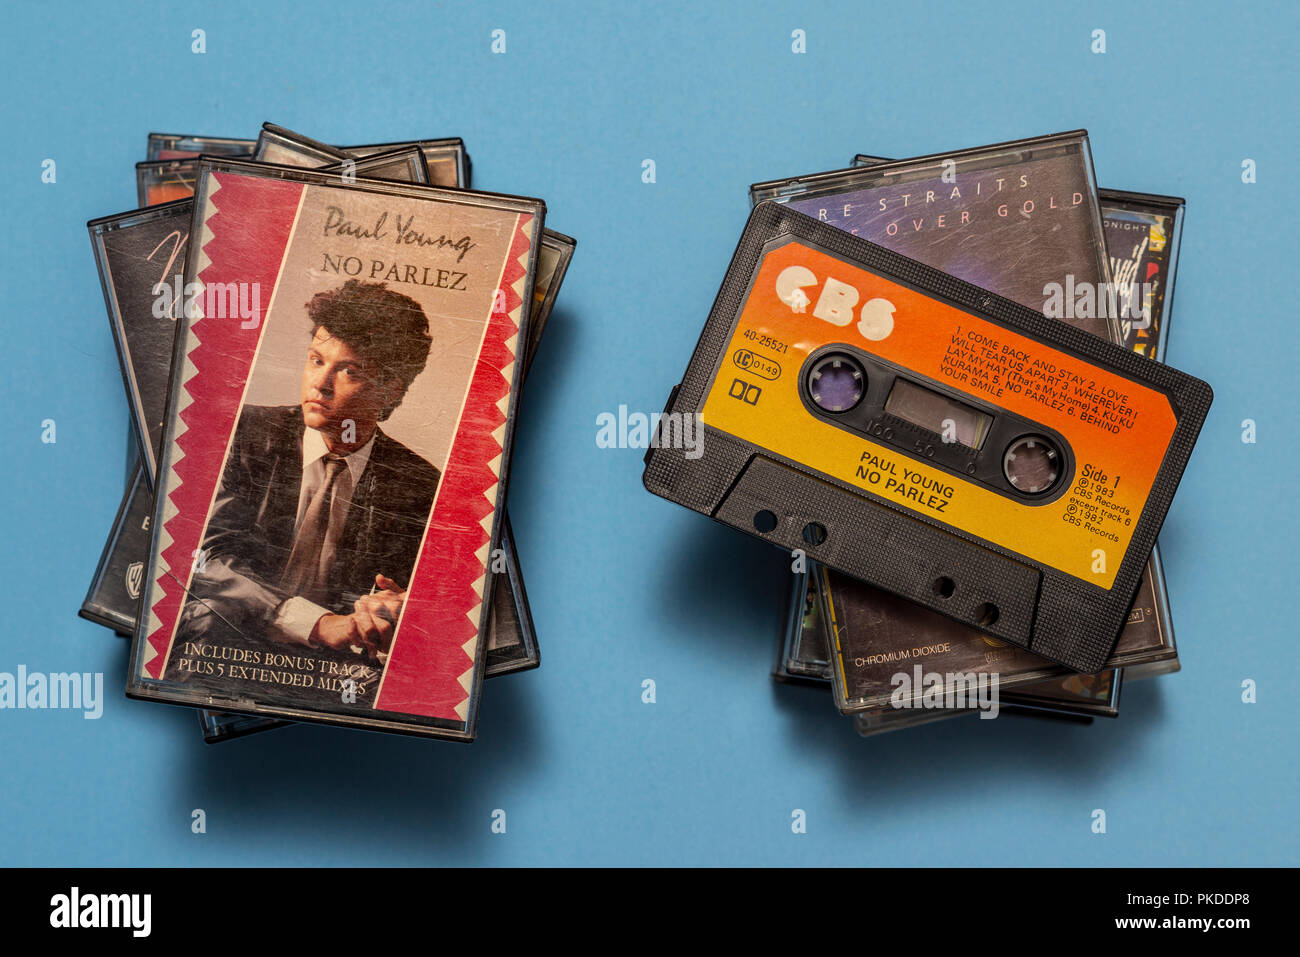 compact audio cassette of Paul Young, No Parlez album with art work. - Stock Image